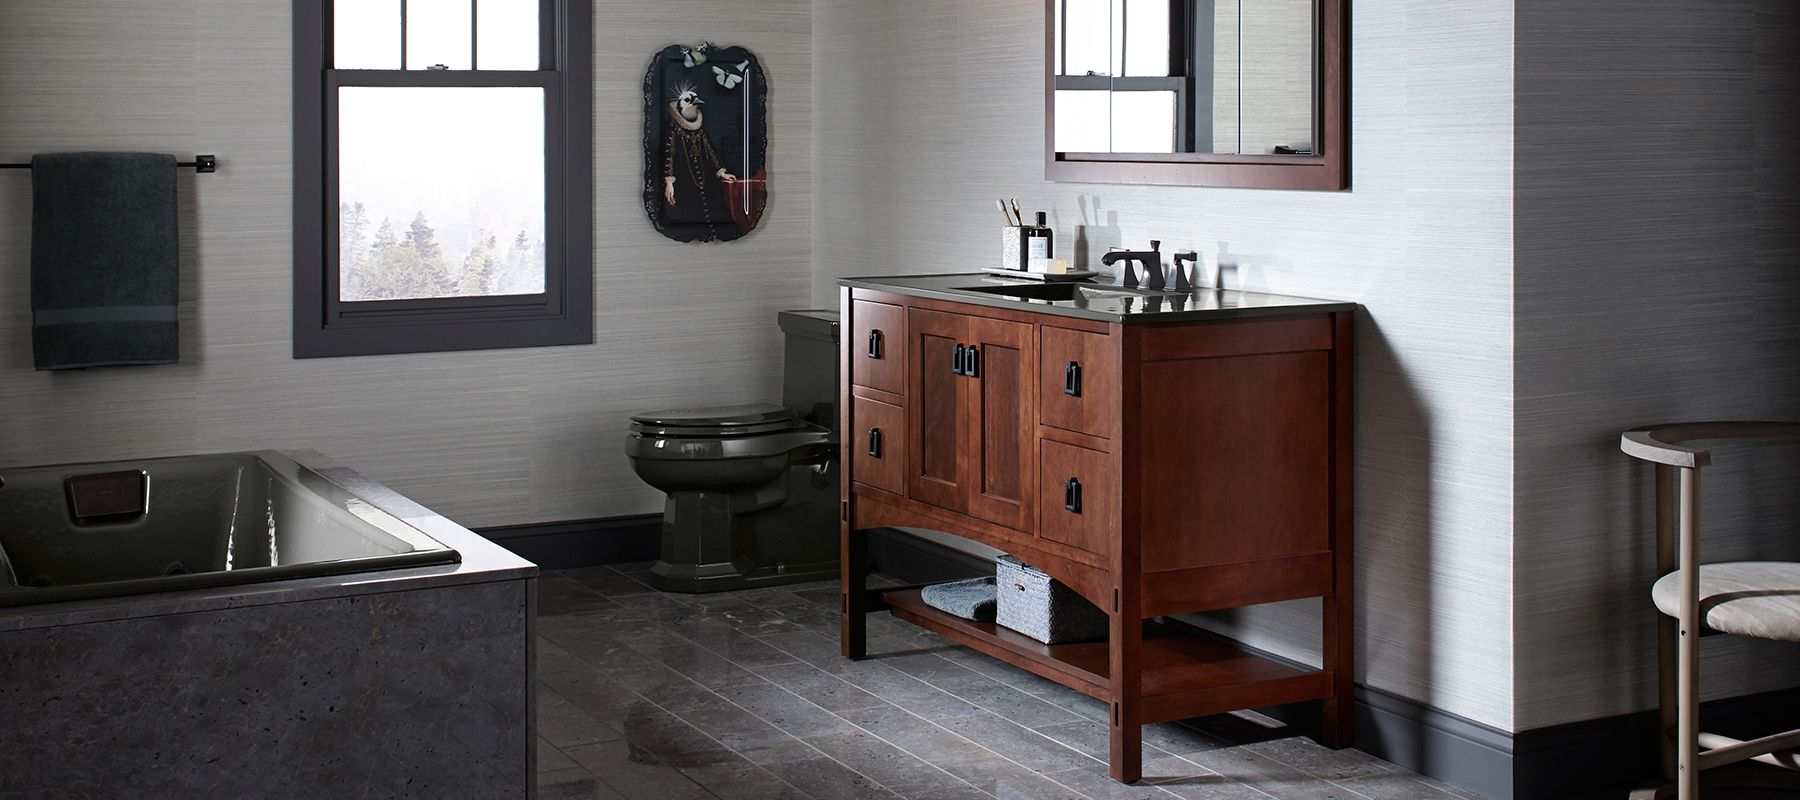 Custom Bathroom Vanities Ri bathroom vanities |bathroom | kohler